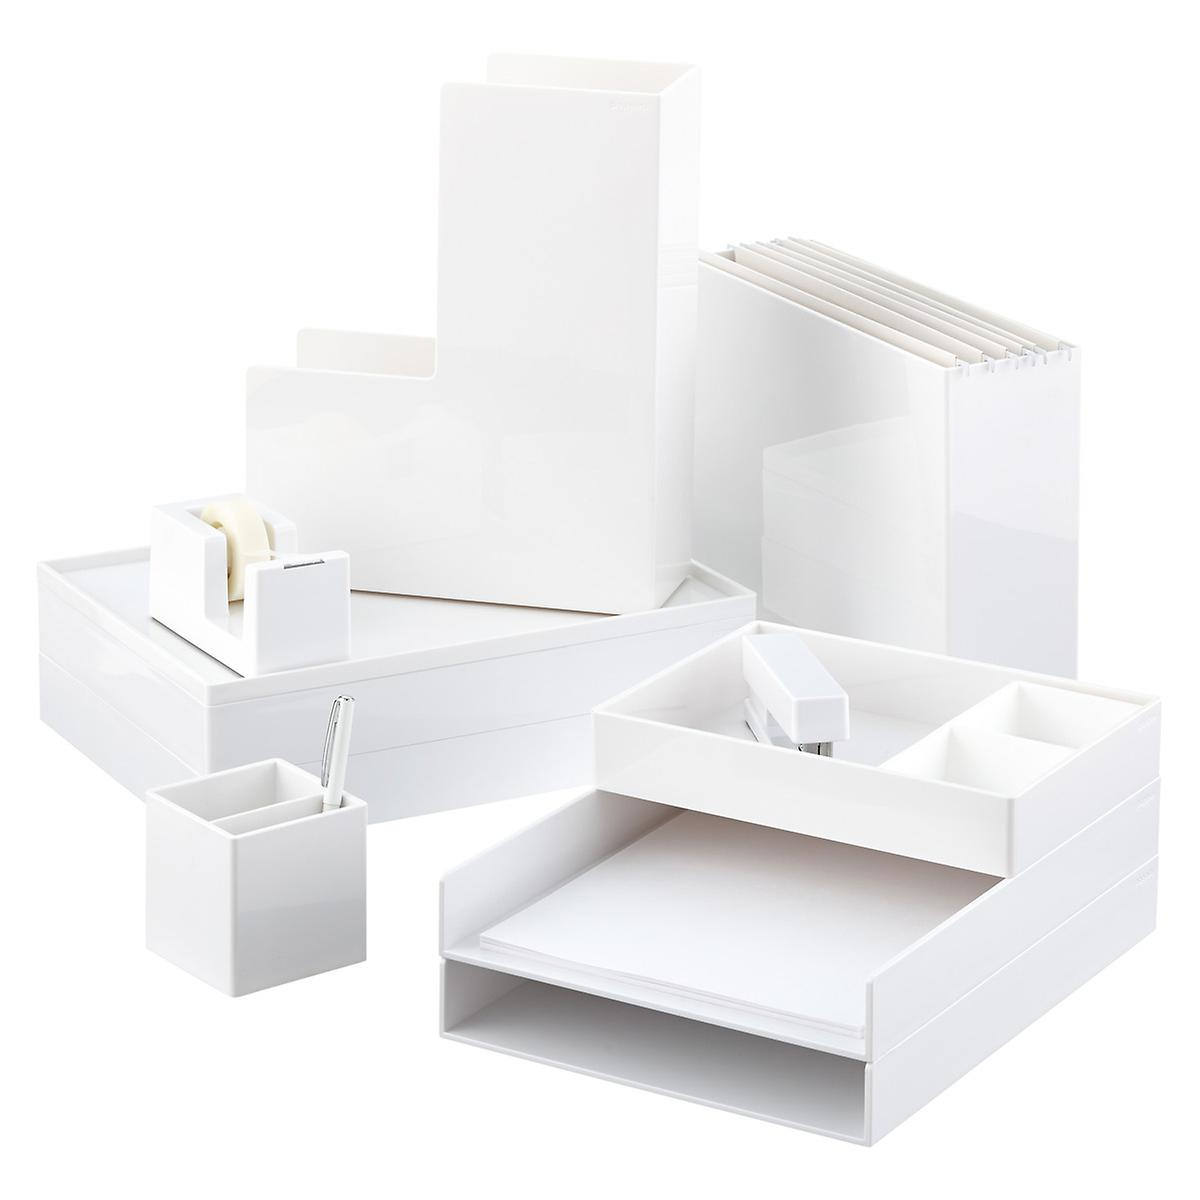 White Poppin Business Card Holder | The Container Store